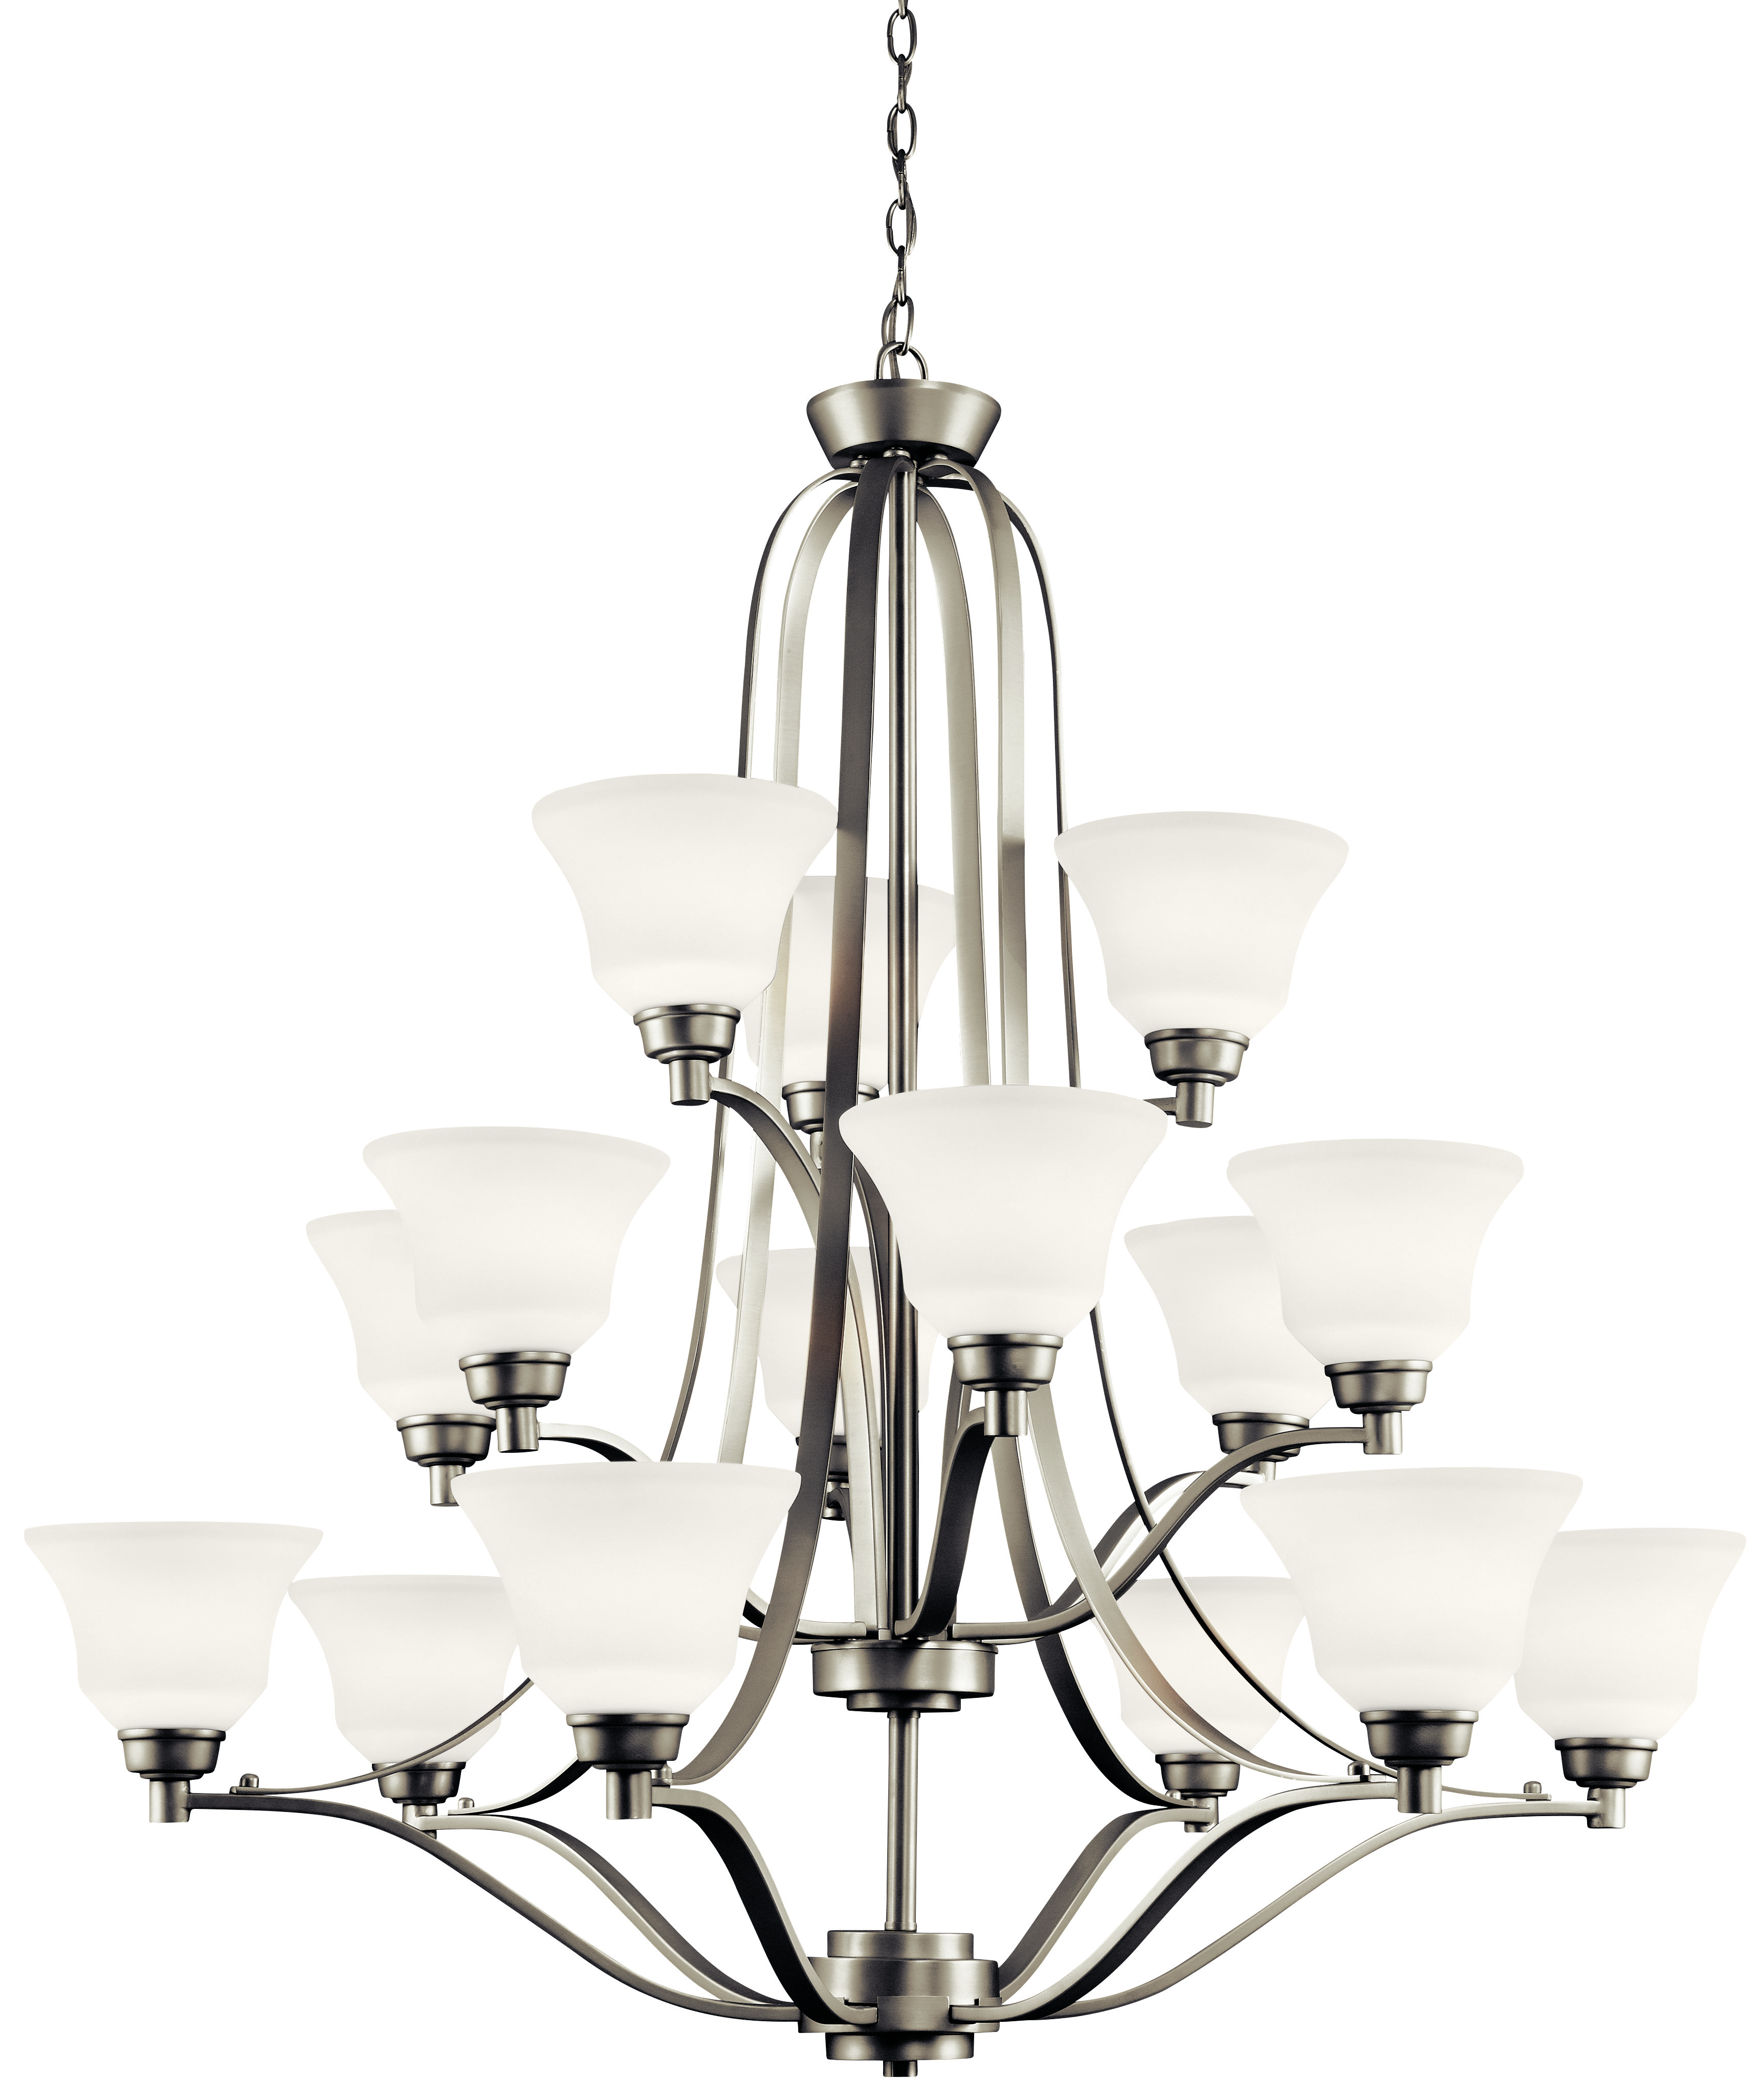 Kichler Langford LED Chandelier with Satin Etched White Shade - Brushed Nickel (1789NIL16)